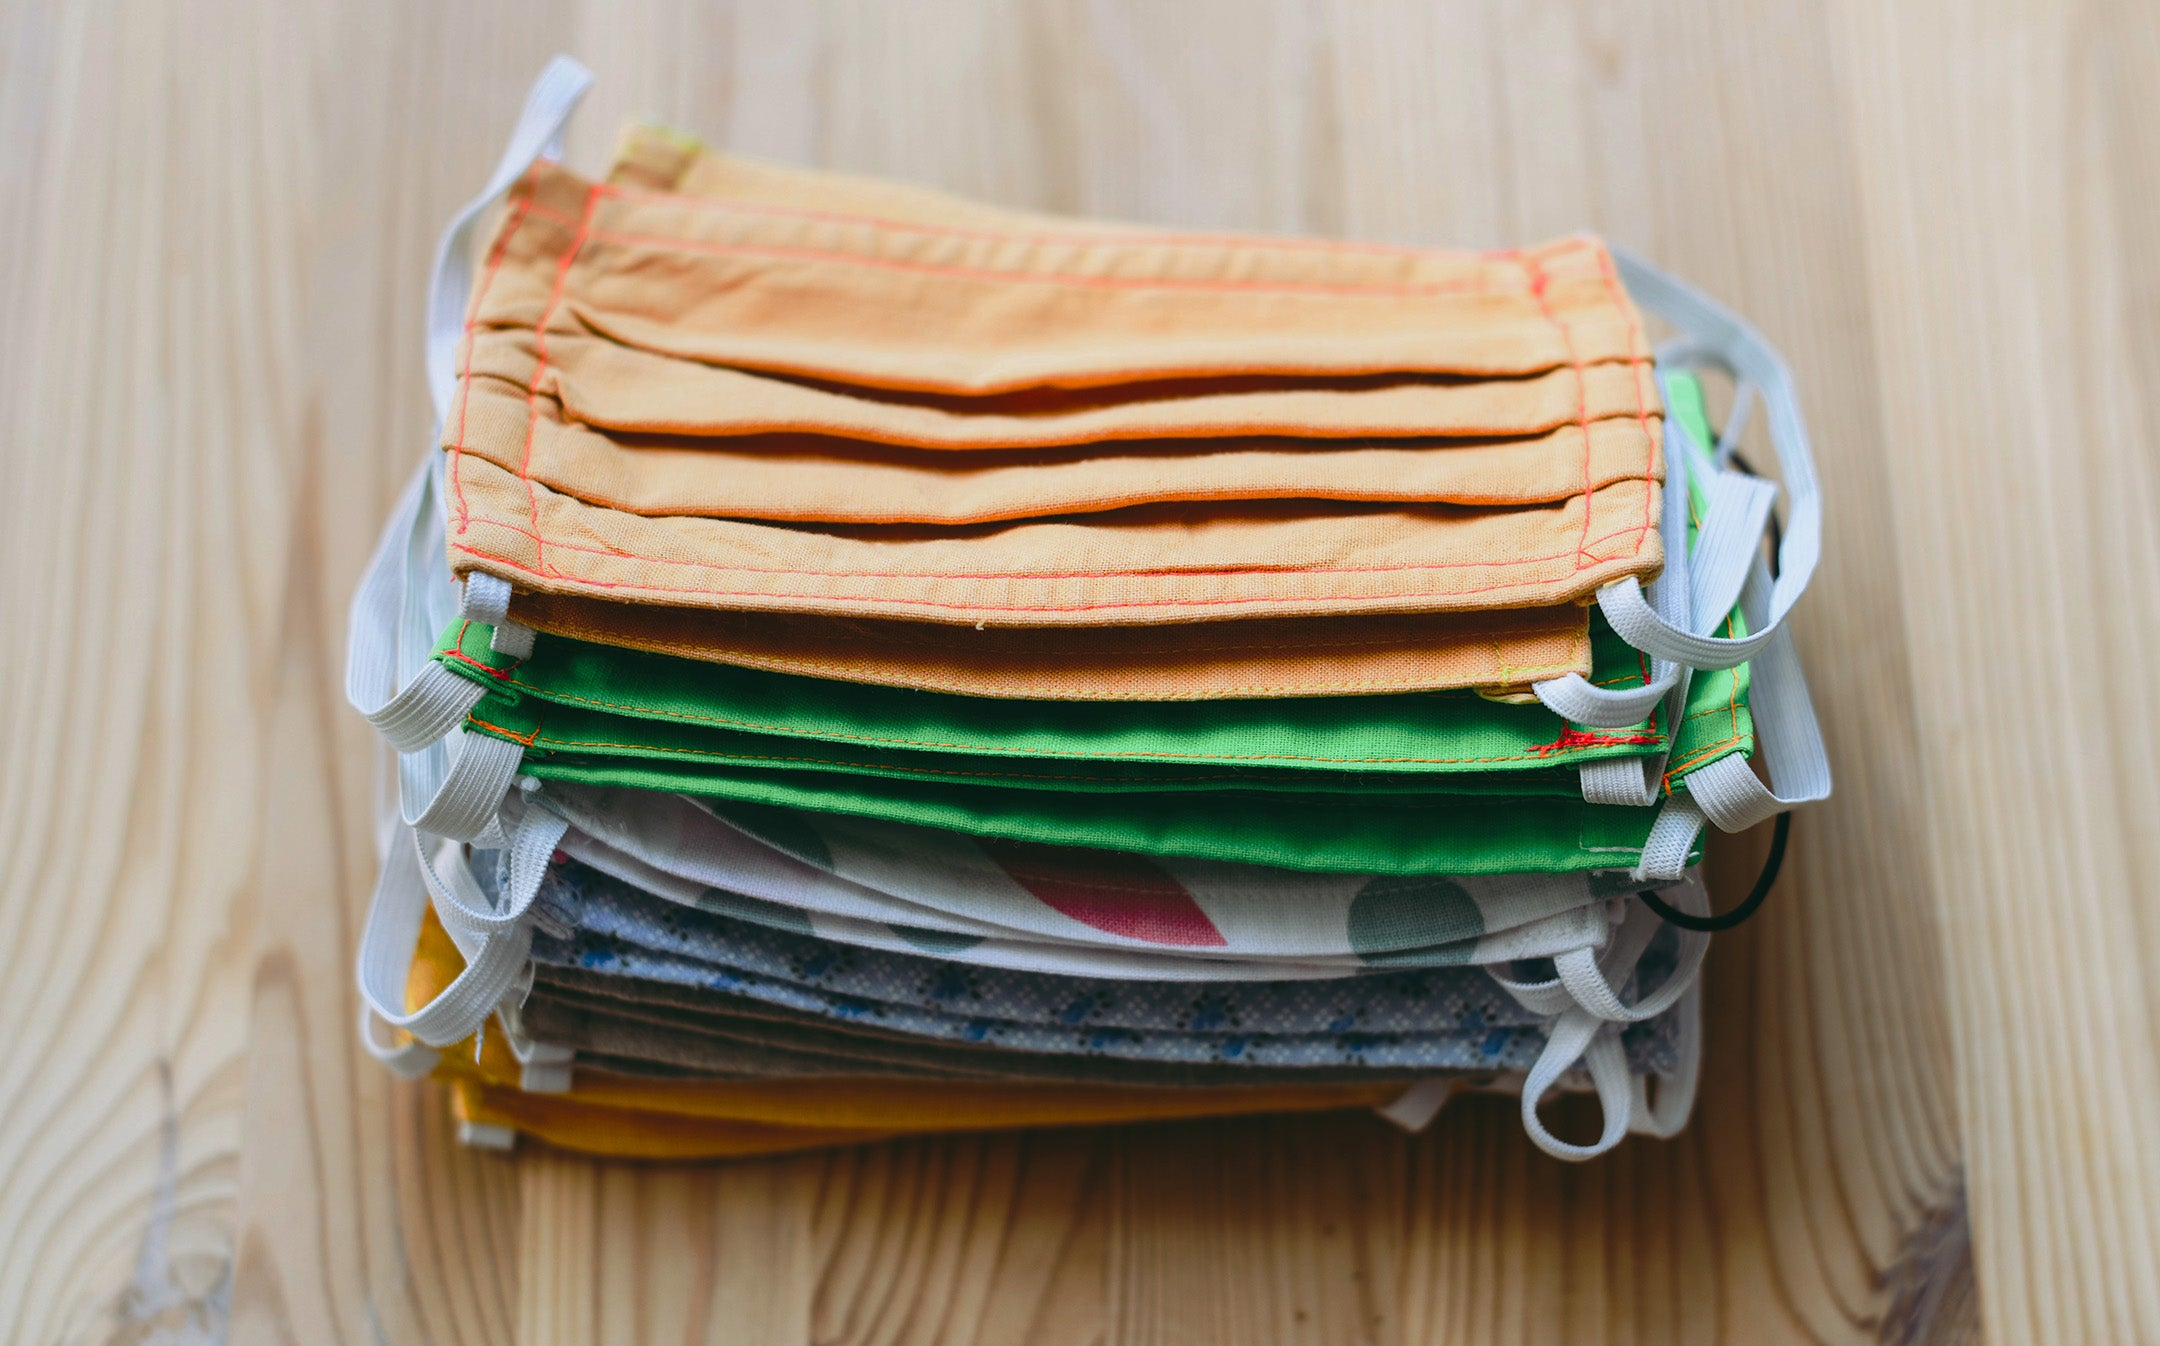 A stack of cloth face masks on a wooden table.